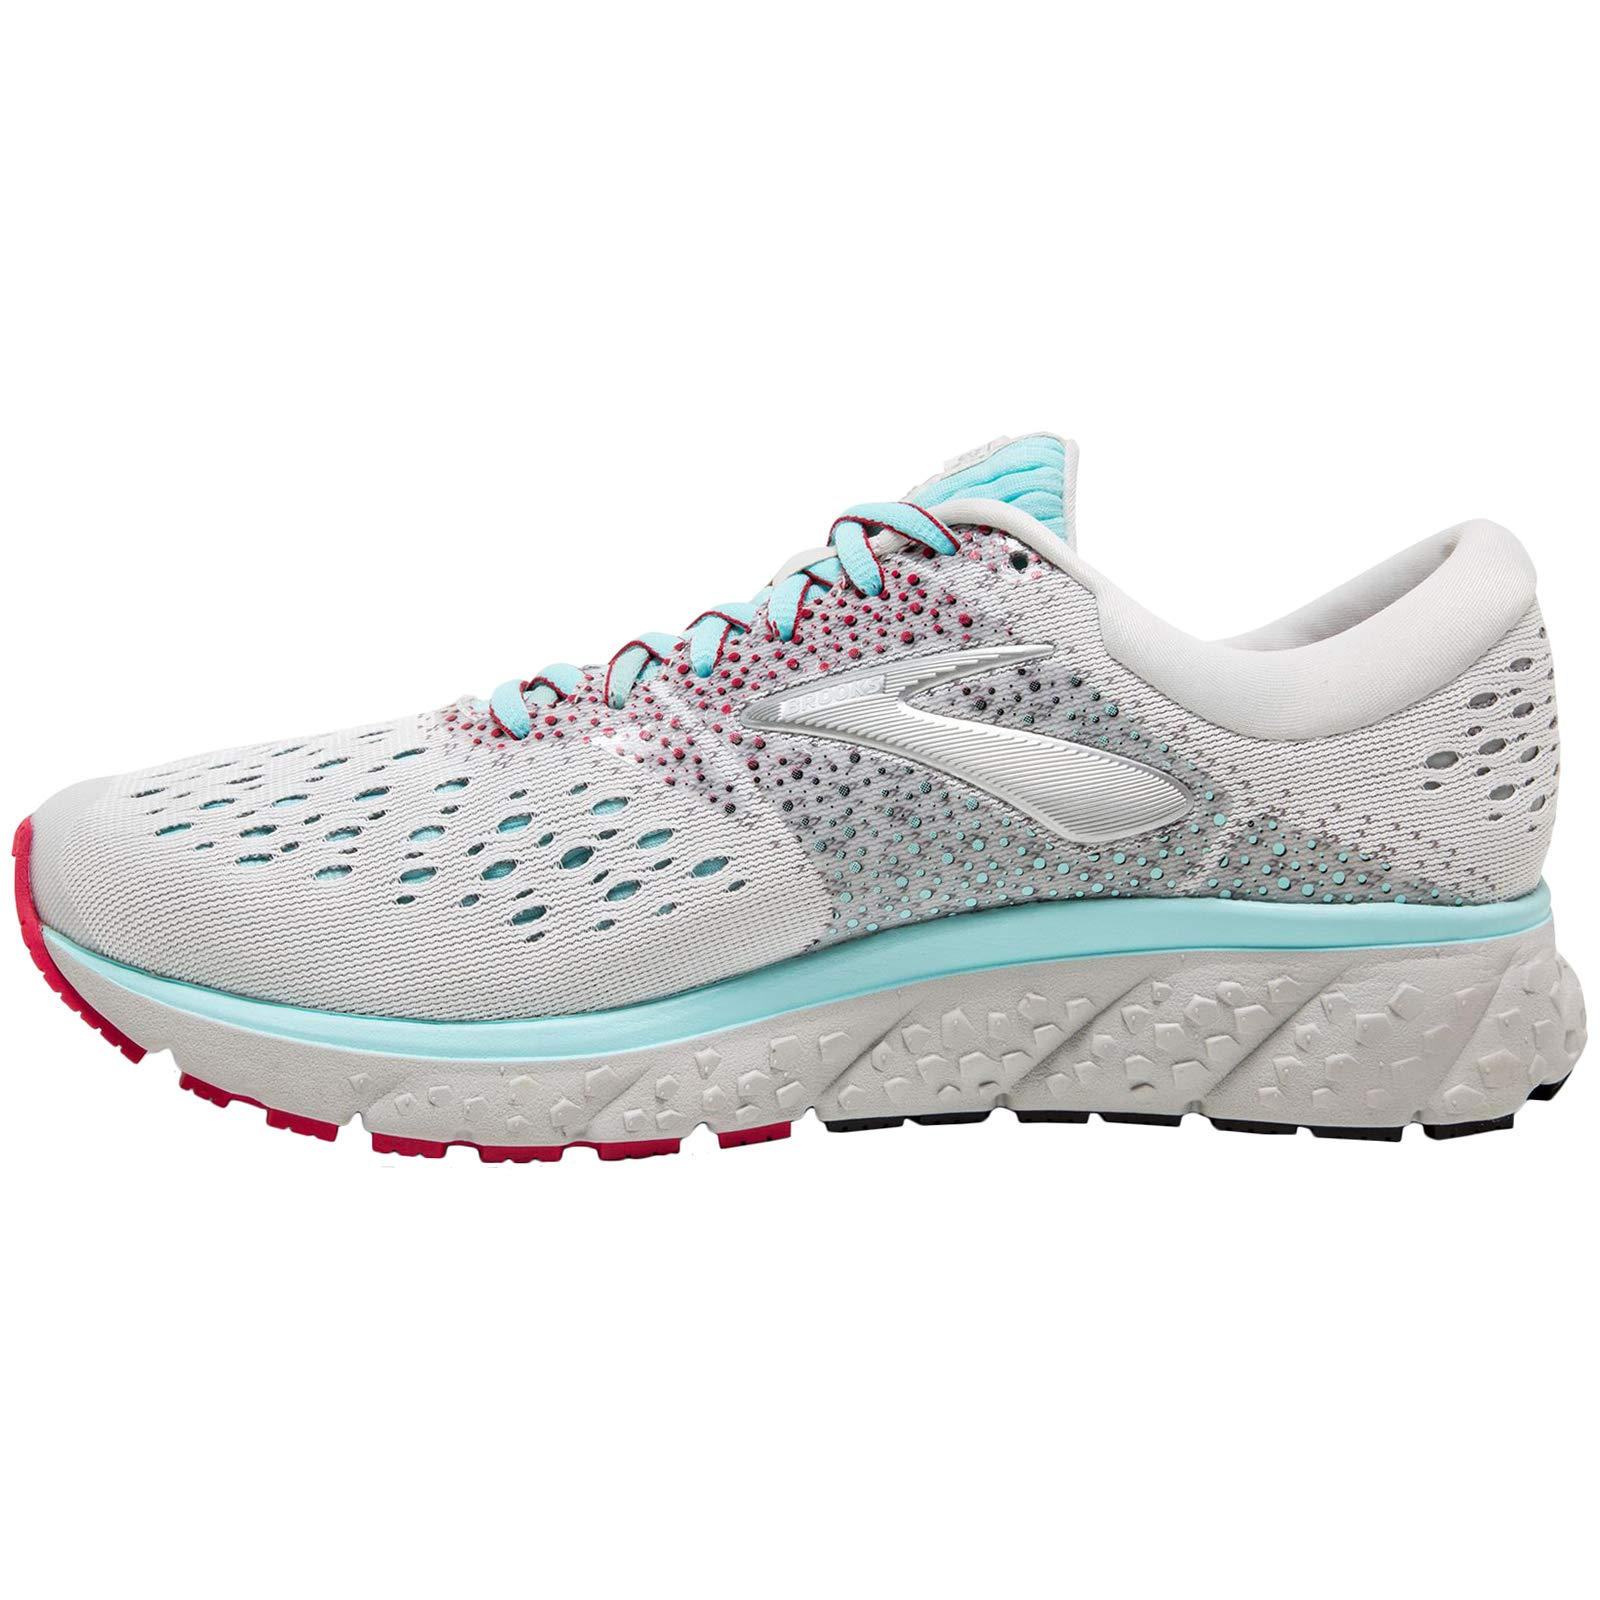 Brooks Women's Glycerin 16 White/Blue/Pink 5.5 B US by Brooks (Image #2)